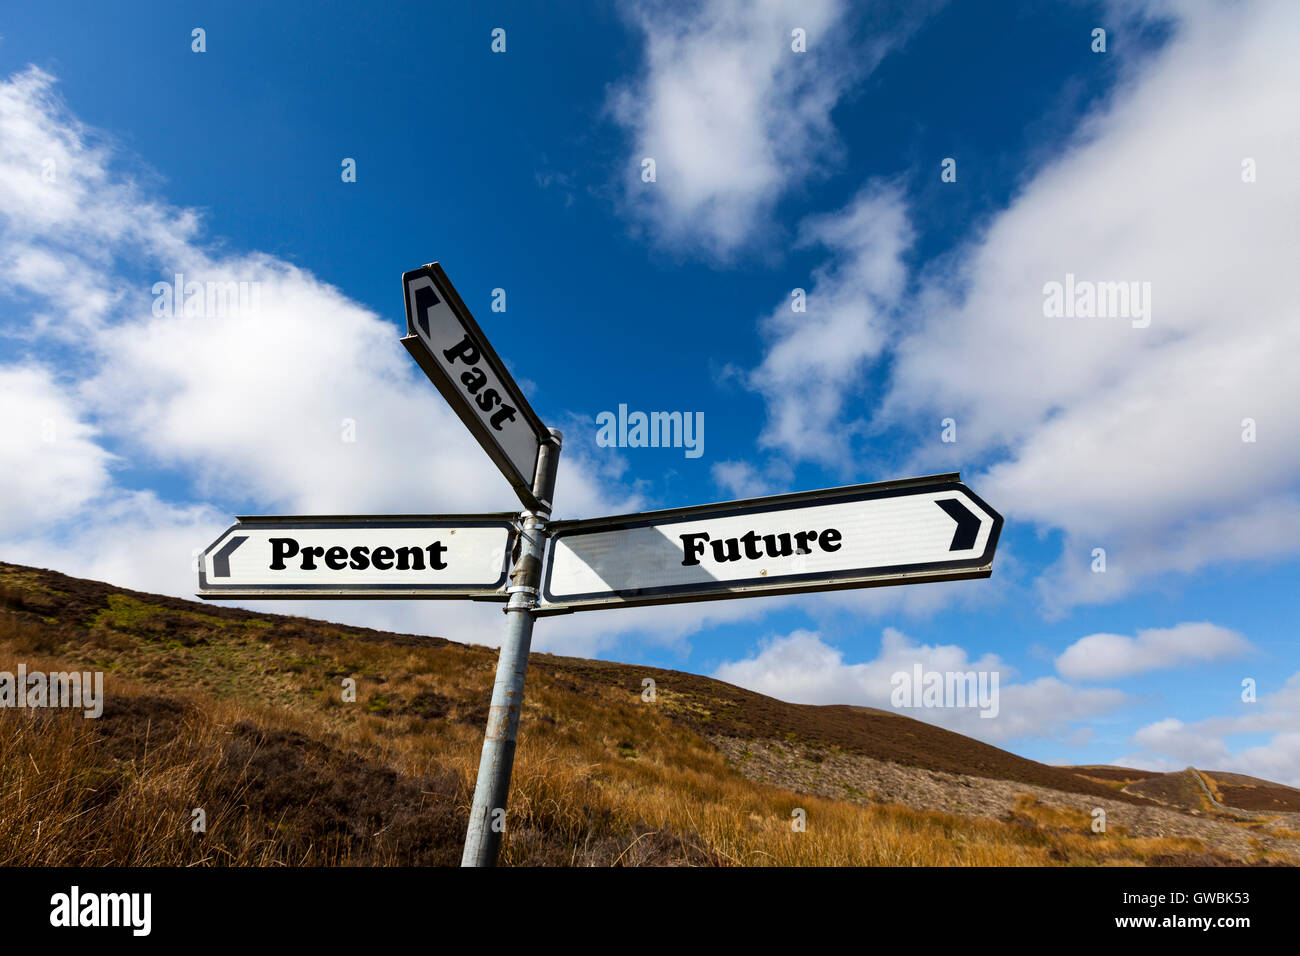 Past present future live way sign words direction directions choice option options choose way in life antonyms antonym - Stock Image